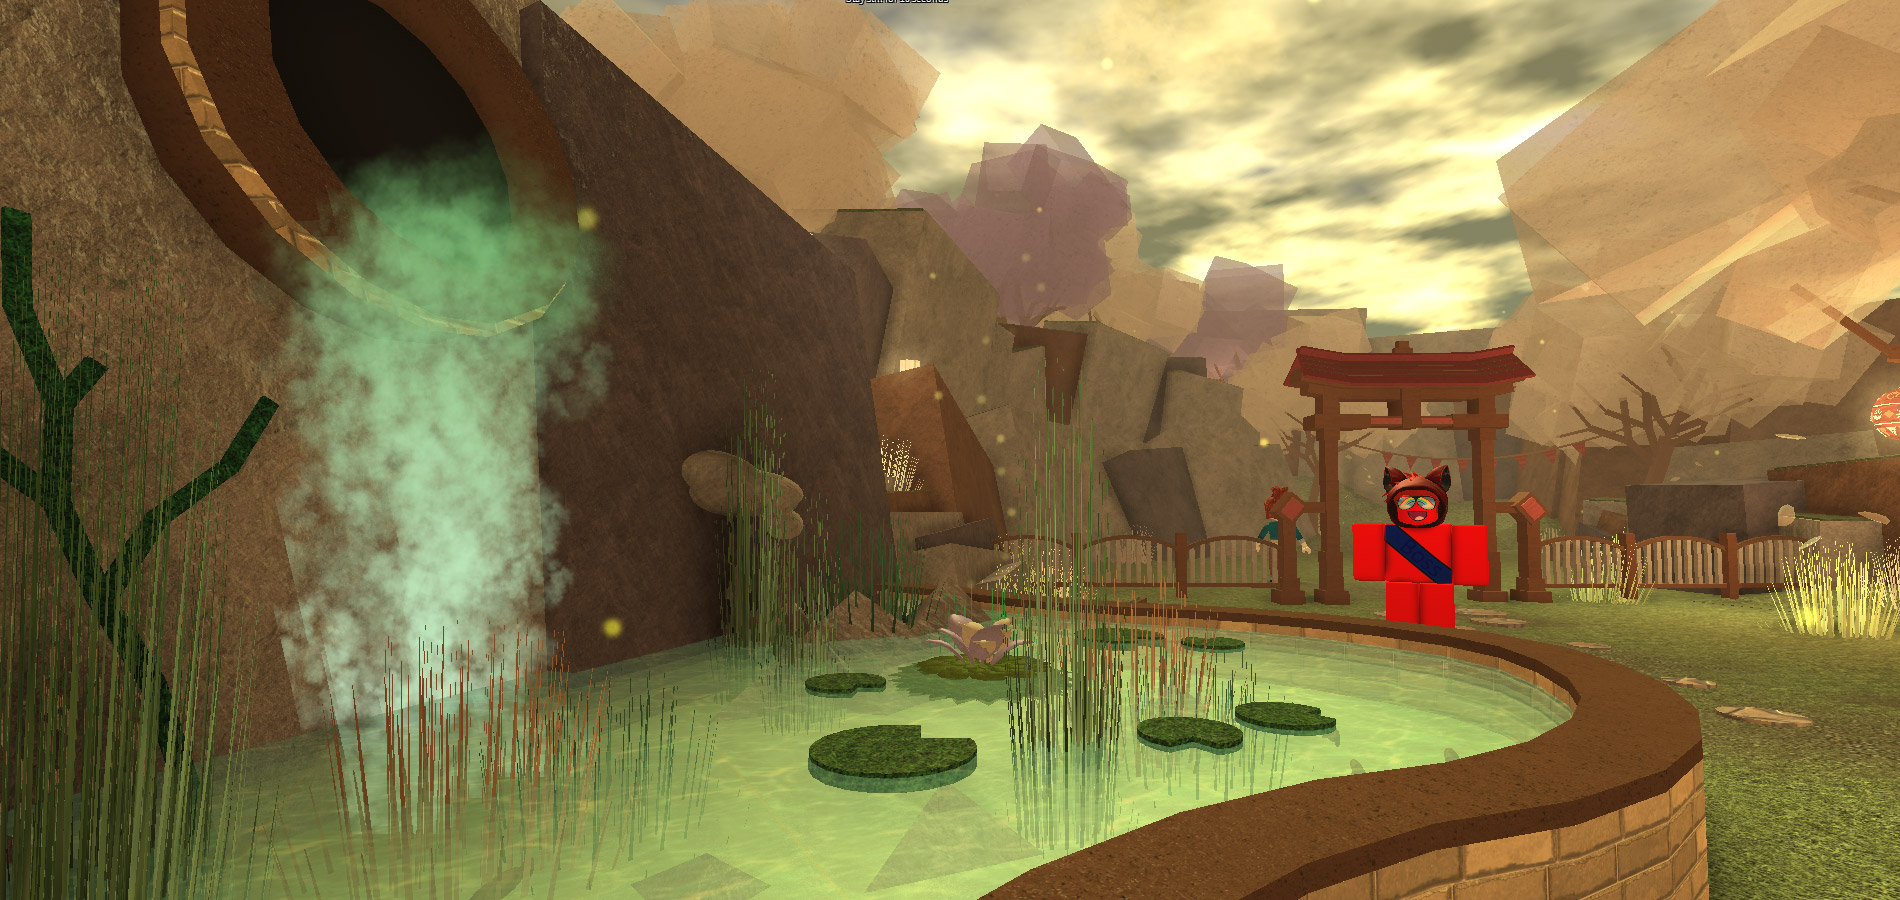 Snow Falling Video Wallpaper Game Creators Show The Power Of Custom Particles Roblox Blog